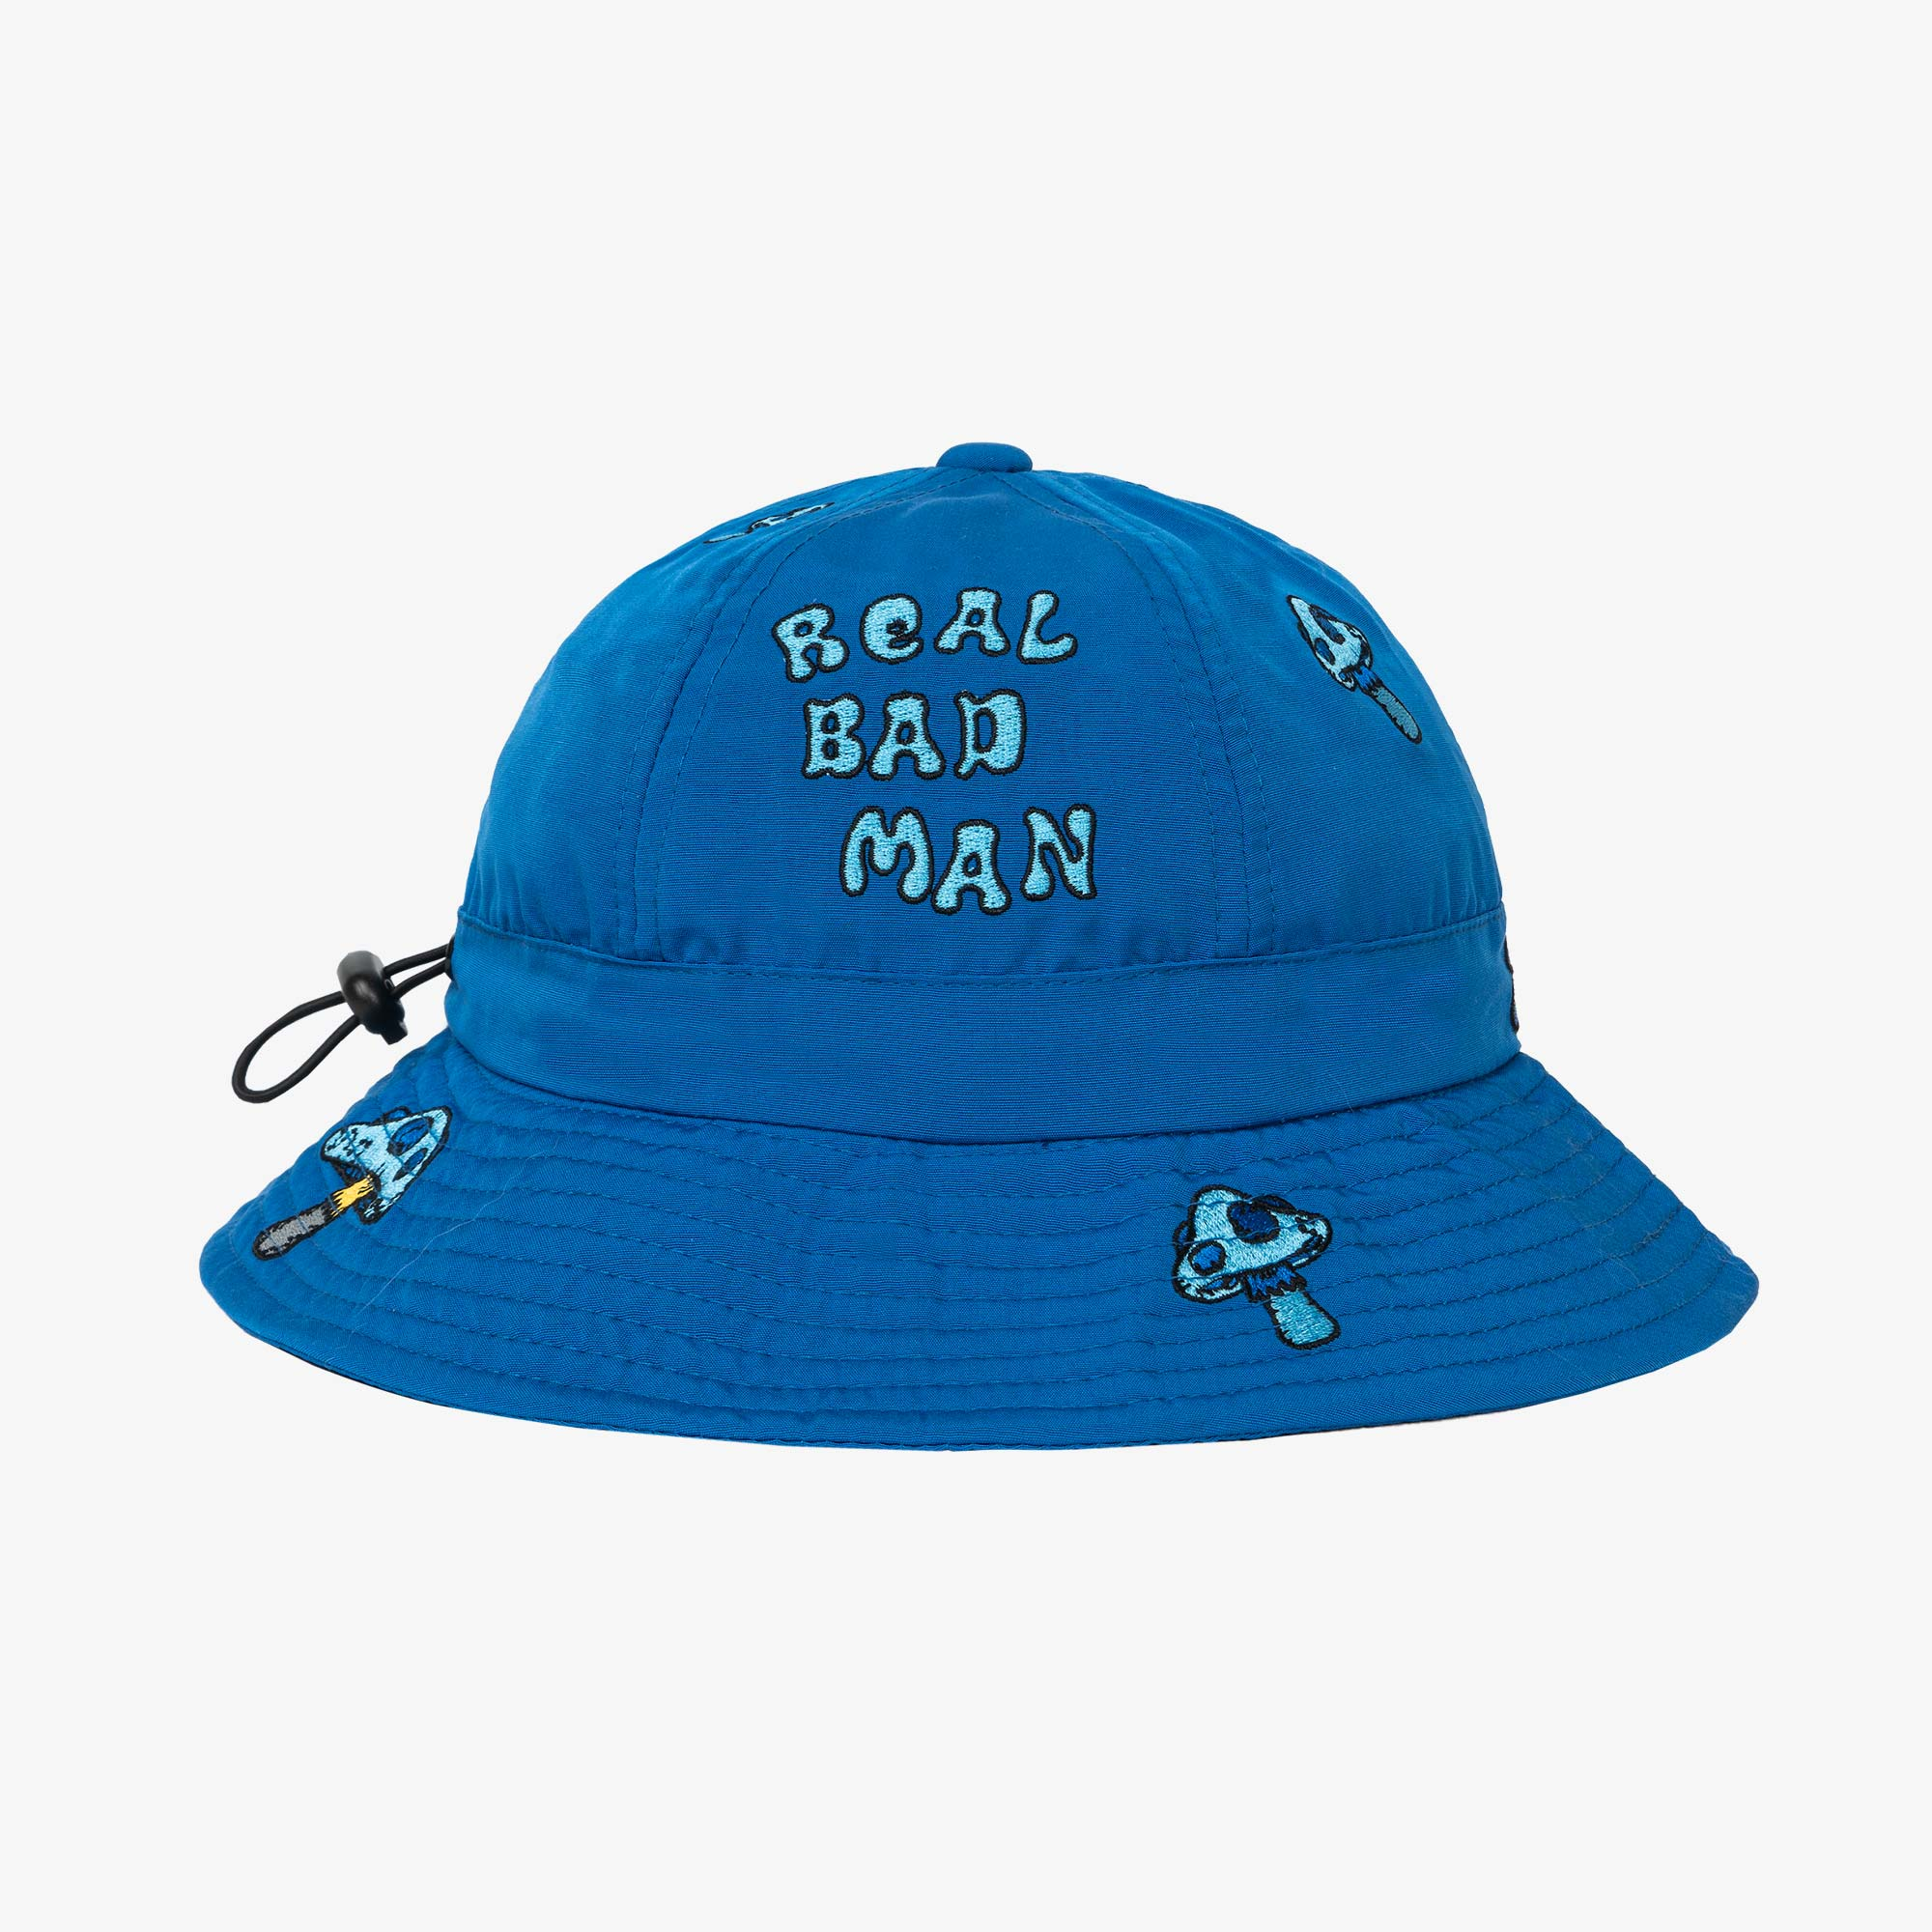 Real Bad Man Delic Embroidered Bell Bucket Hat - Blue 4